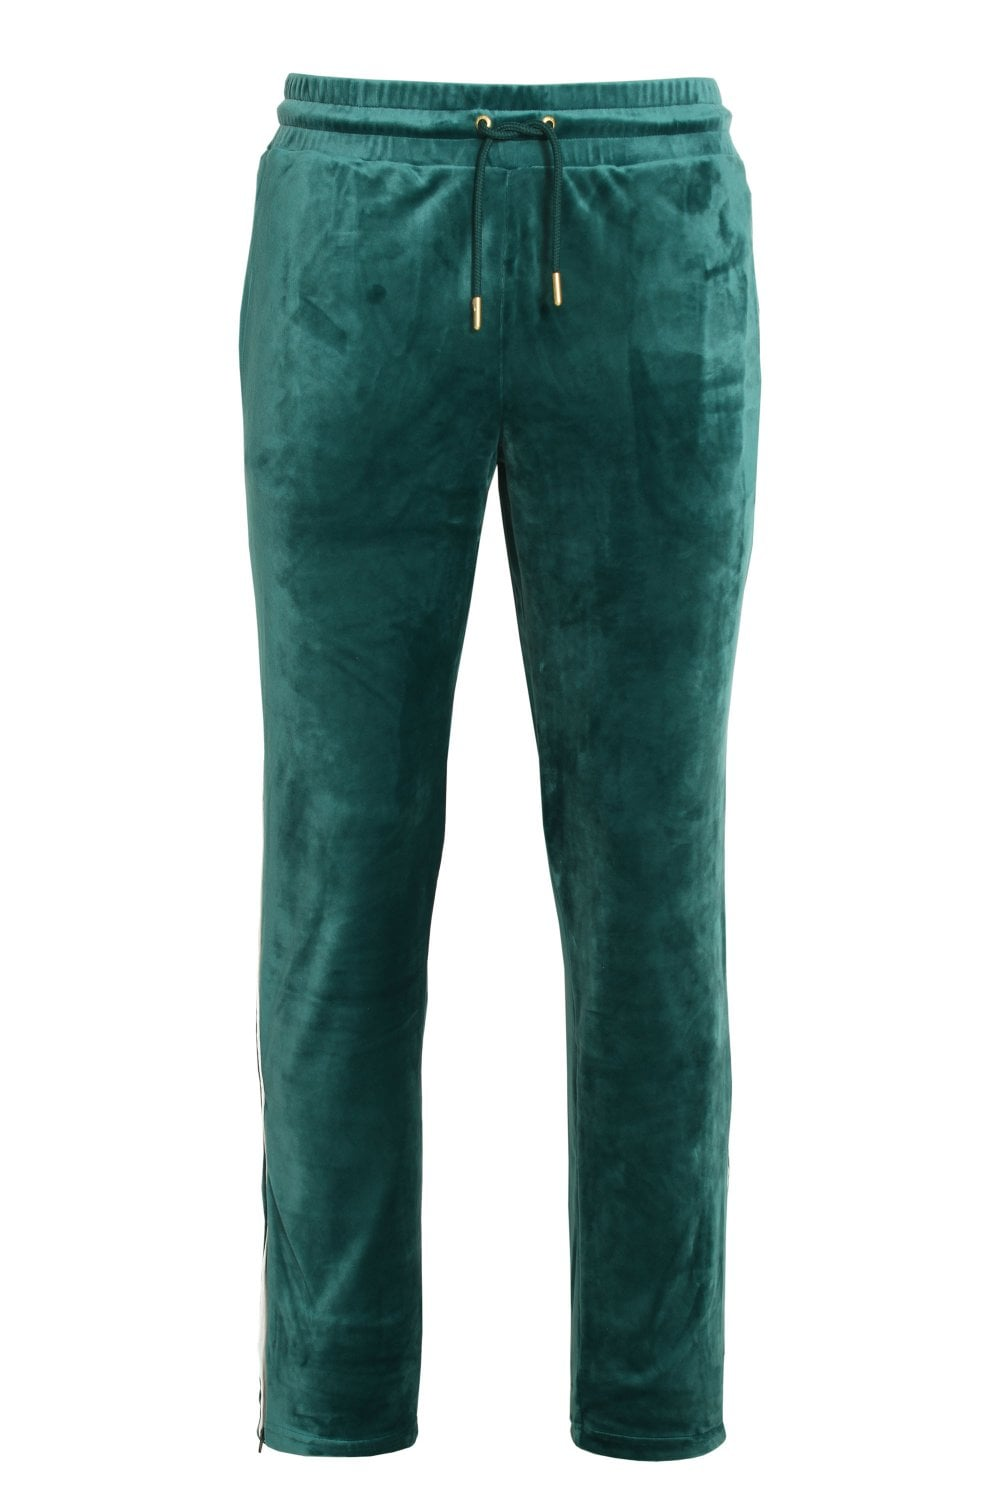 d77a197c Cyrus Velour Track Pant Atlantic Deep/White